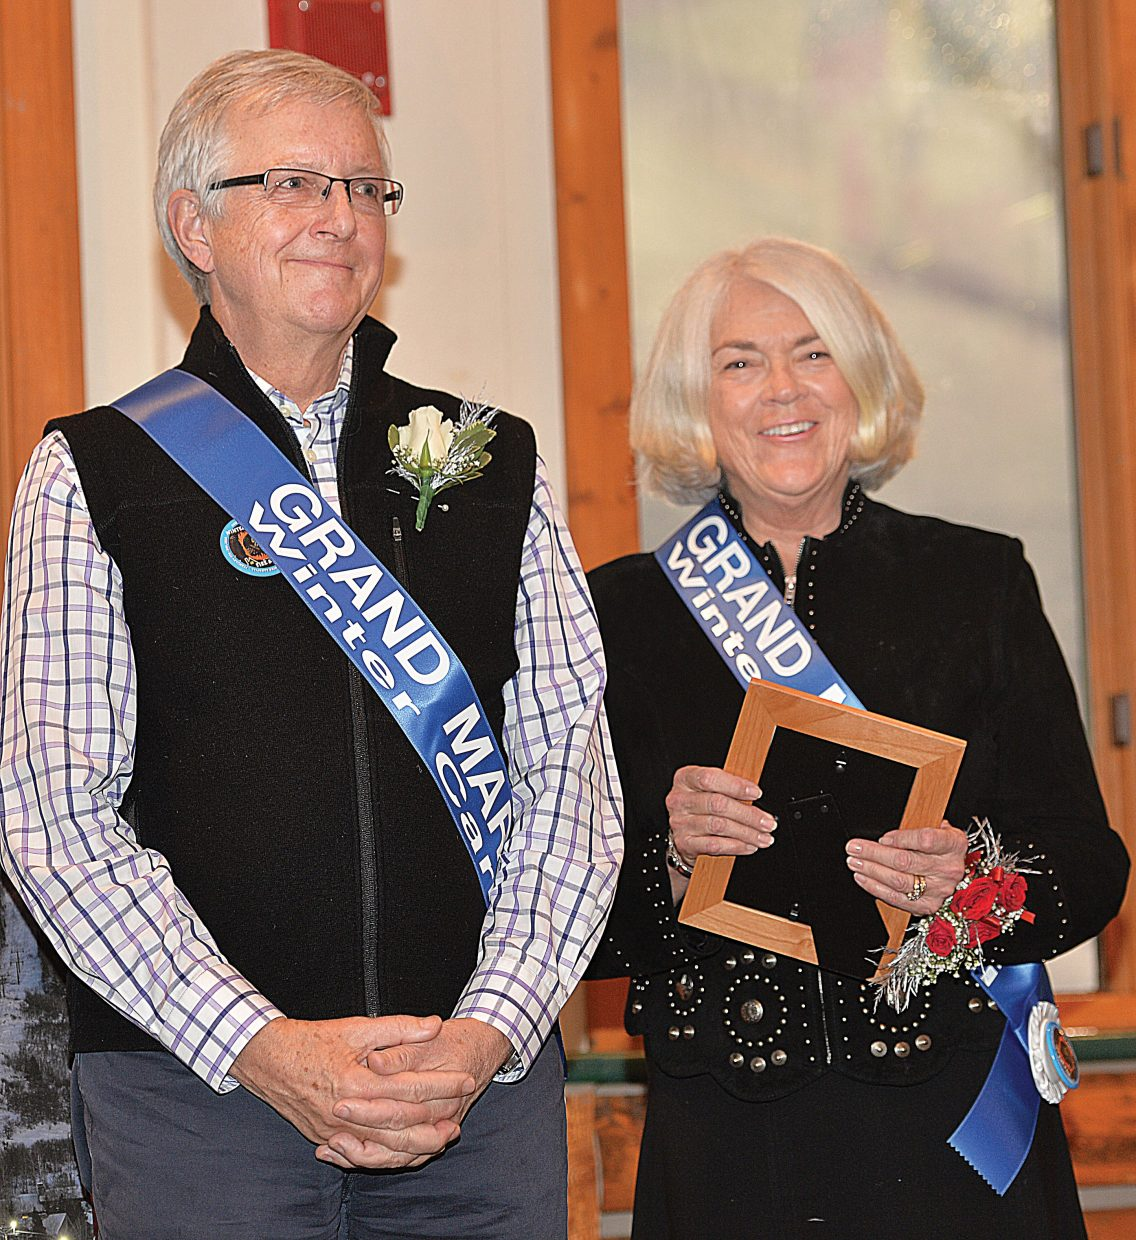 This year's Winter Carnival's grand marshals, Chris and Eileen Diamond, took center stage during Wednesday evening's Opening Ceremonies inside Olympian Hall at the Howelsen Hill Lodge.